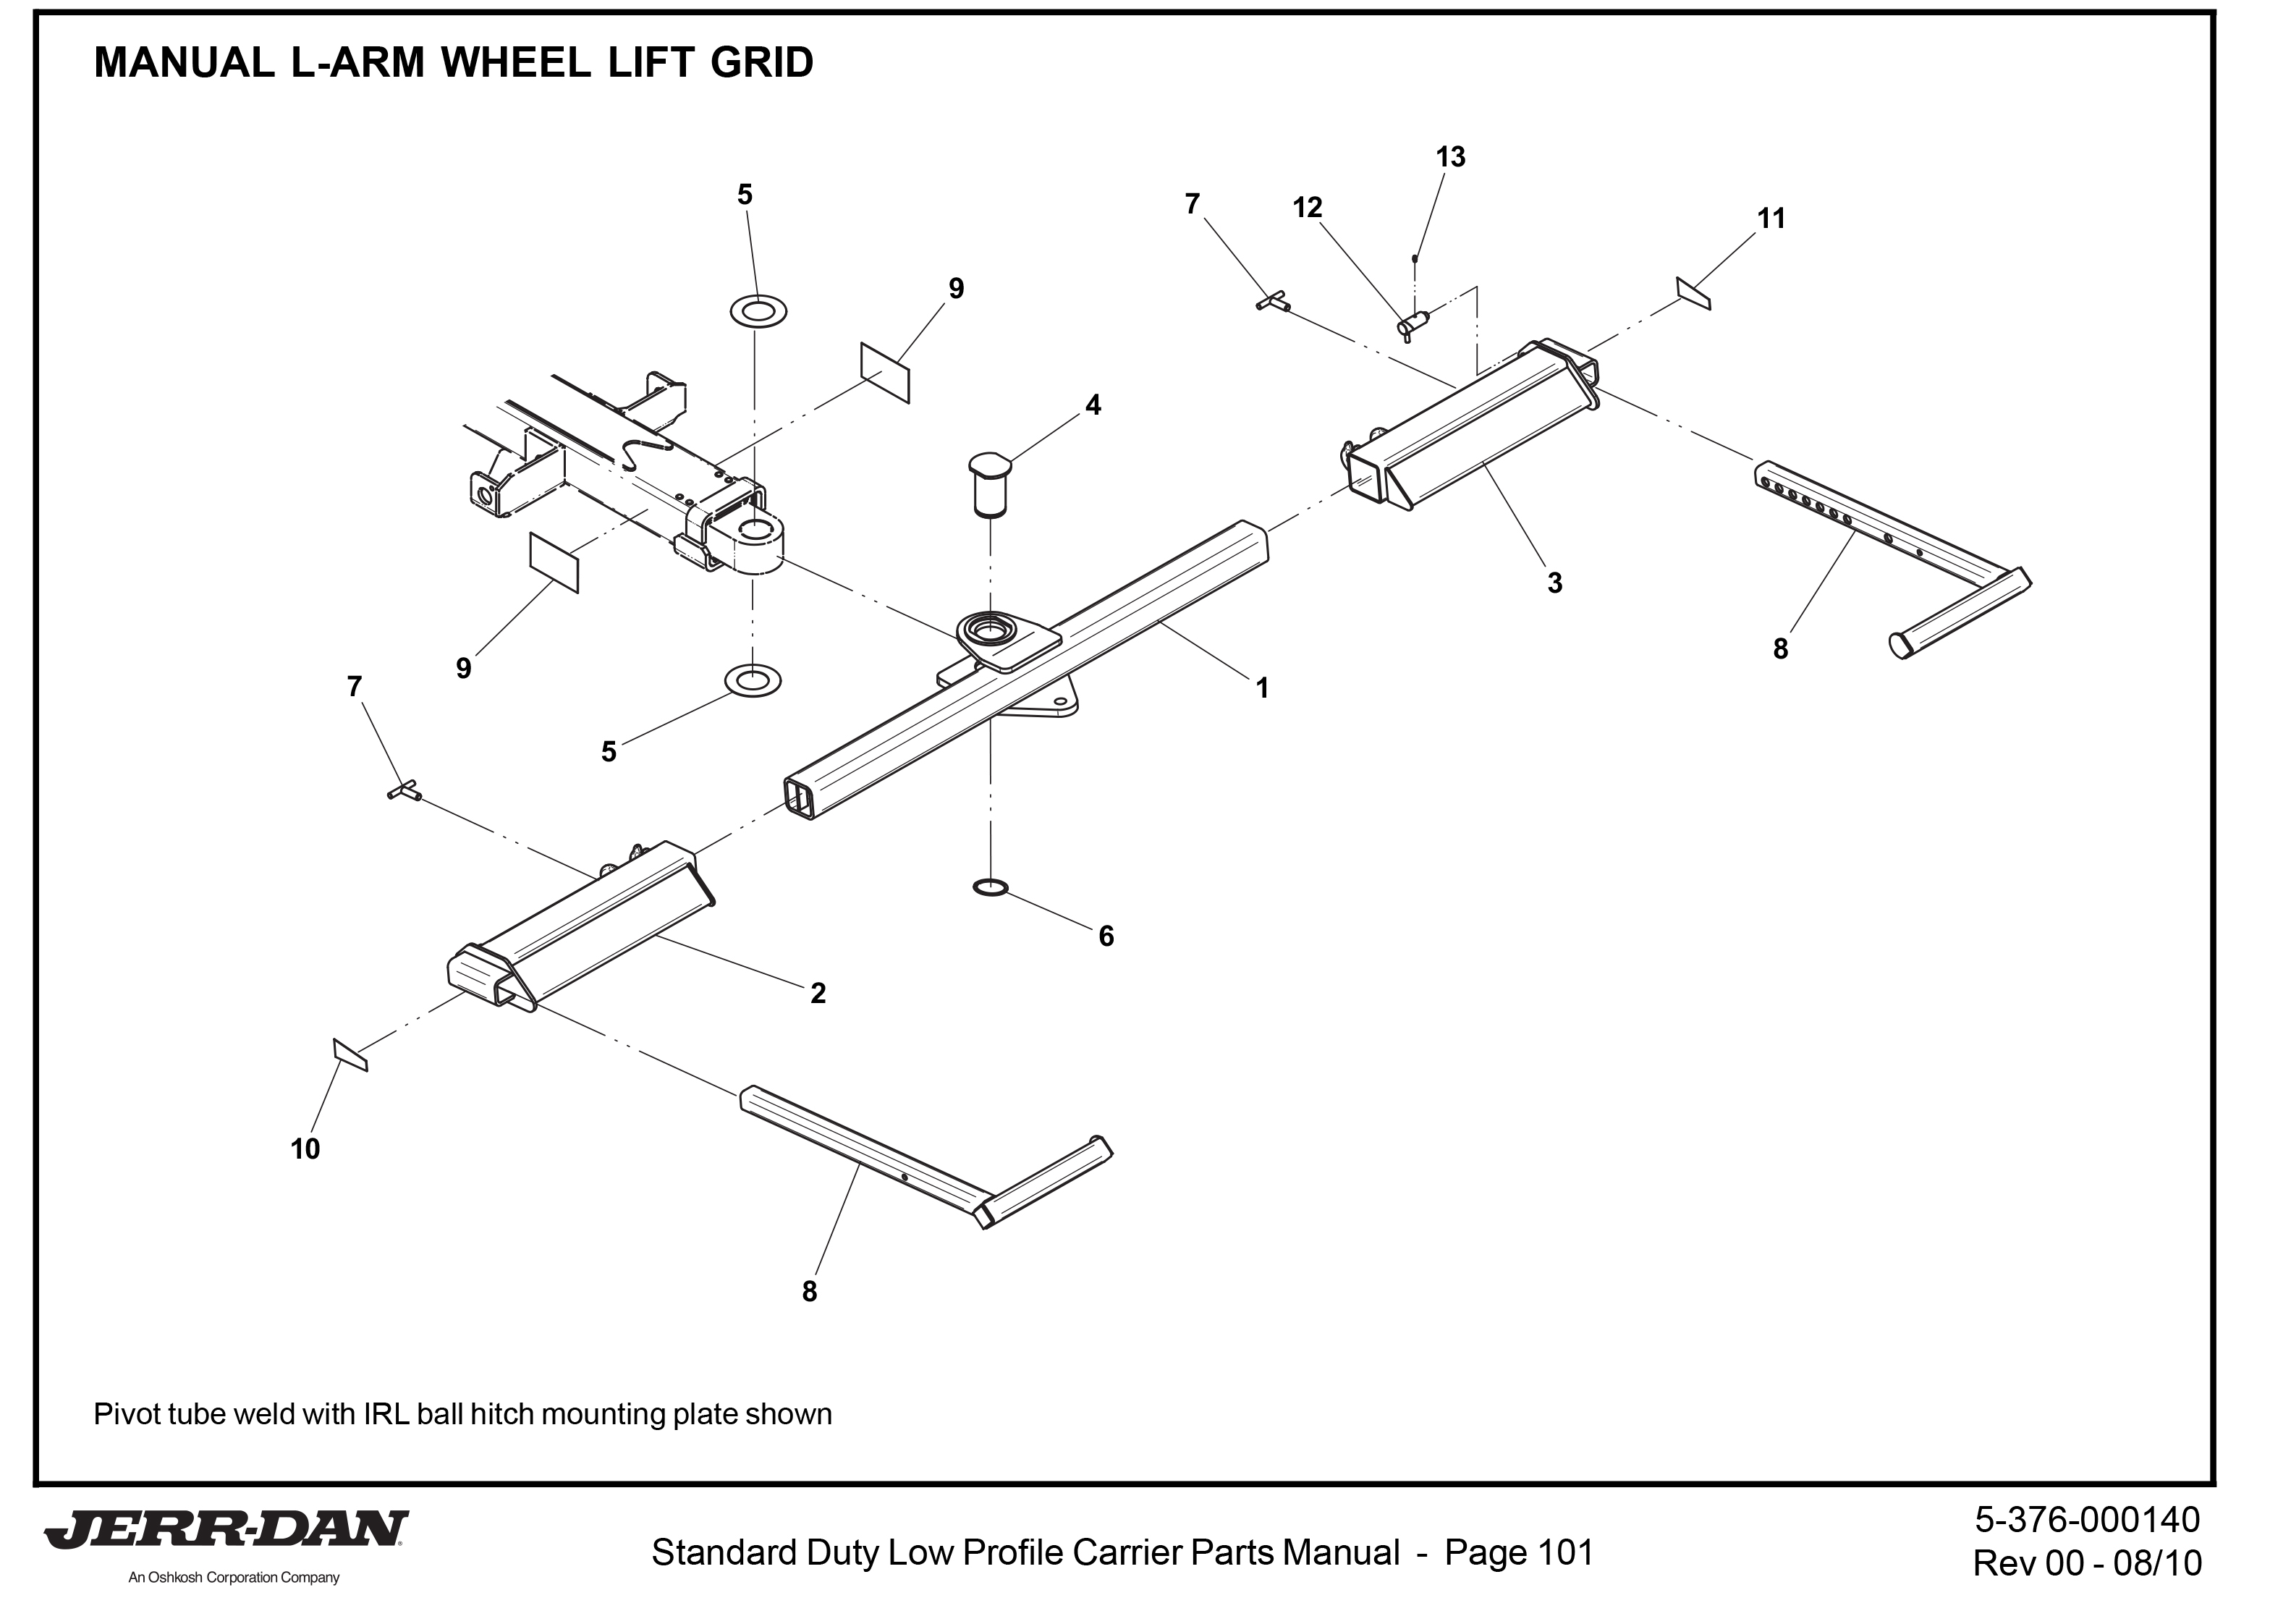 Wheel Lift L Arms Amp Wheel Grids Archives